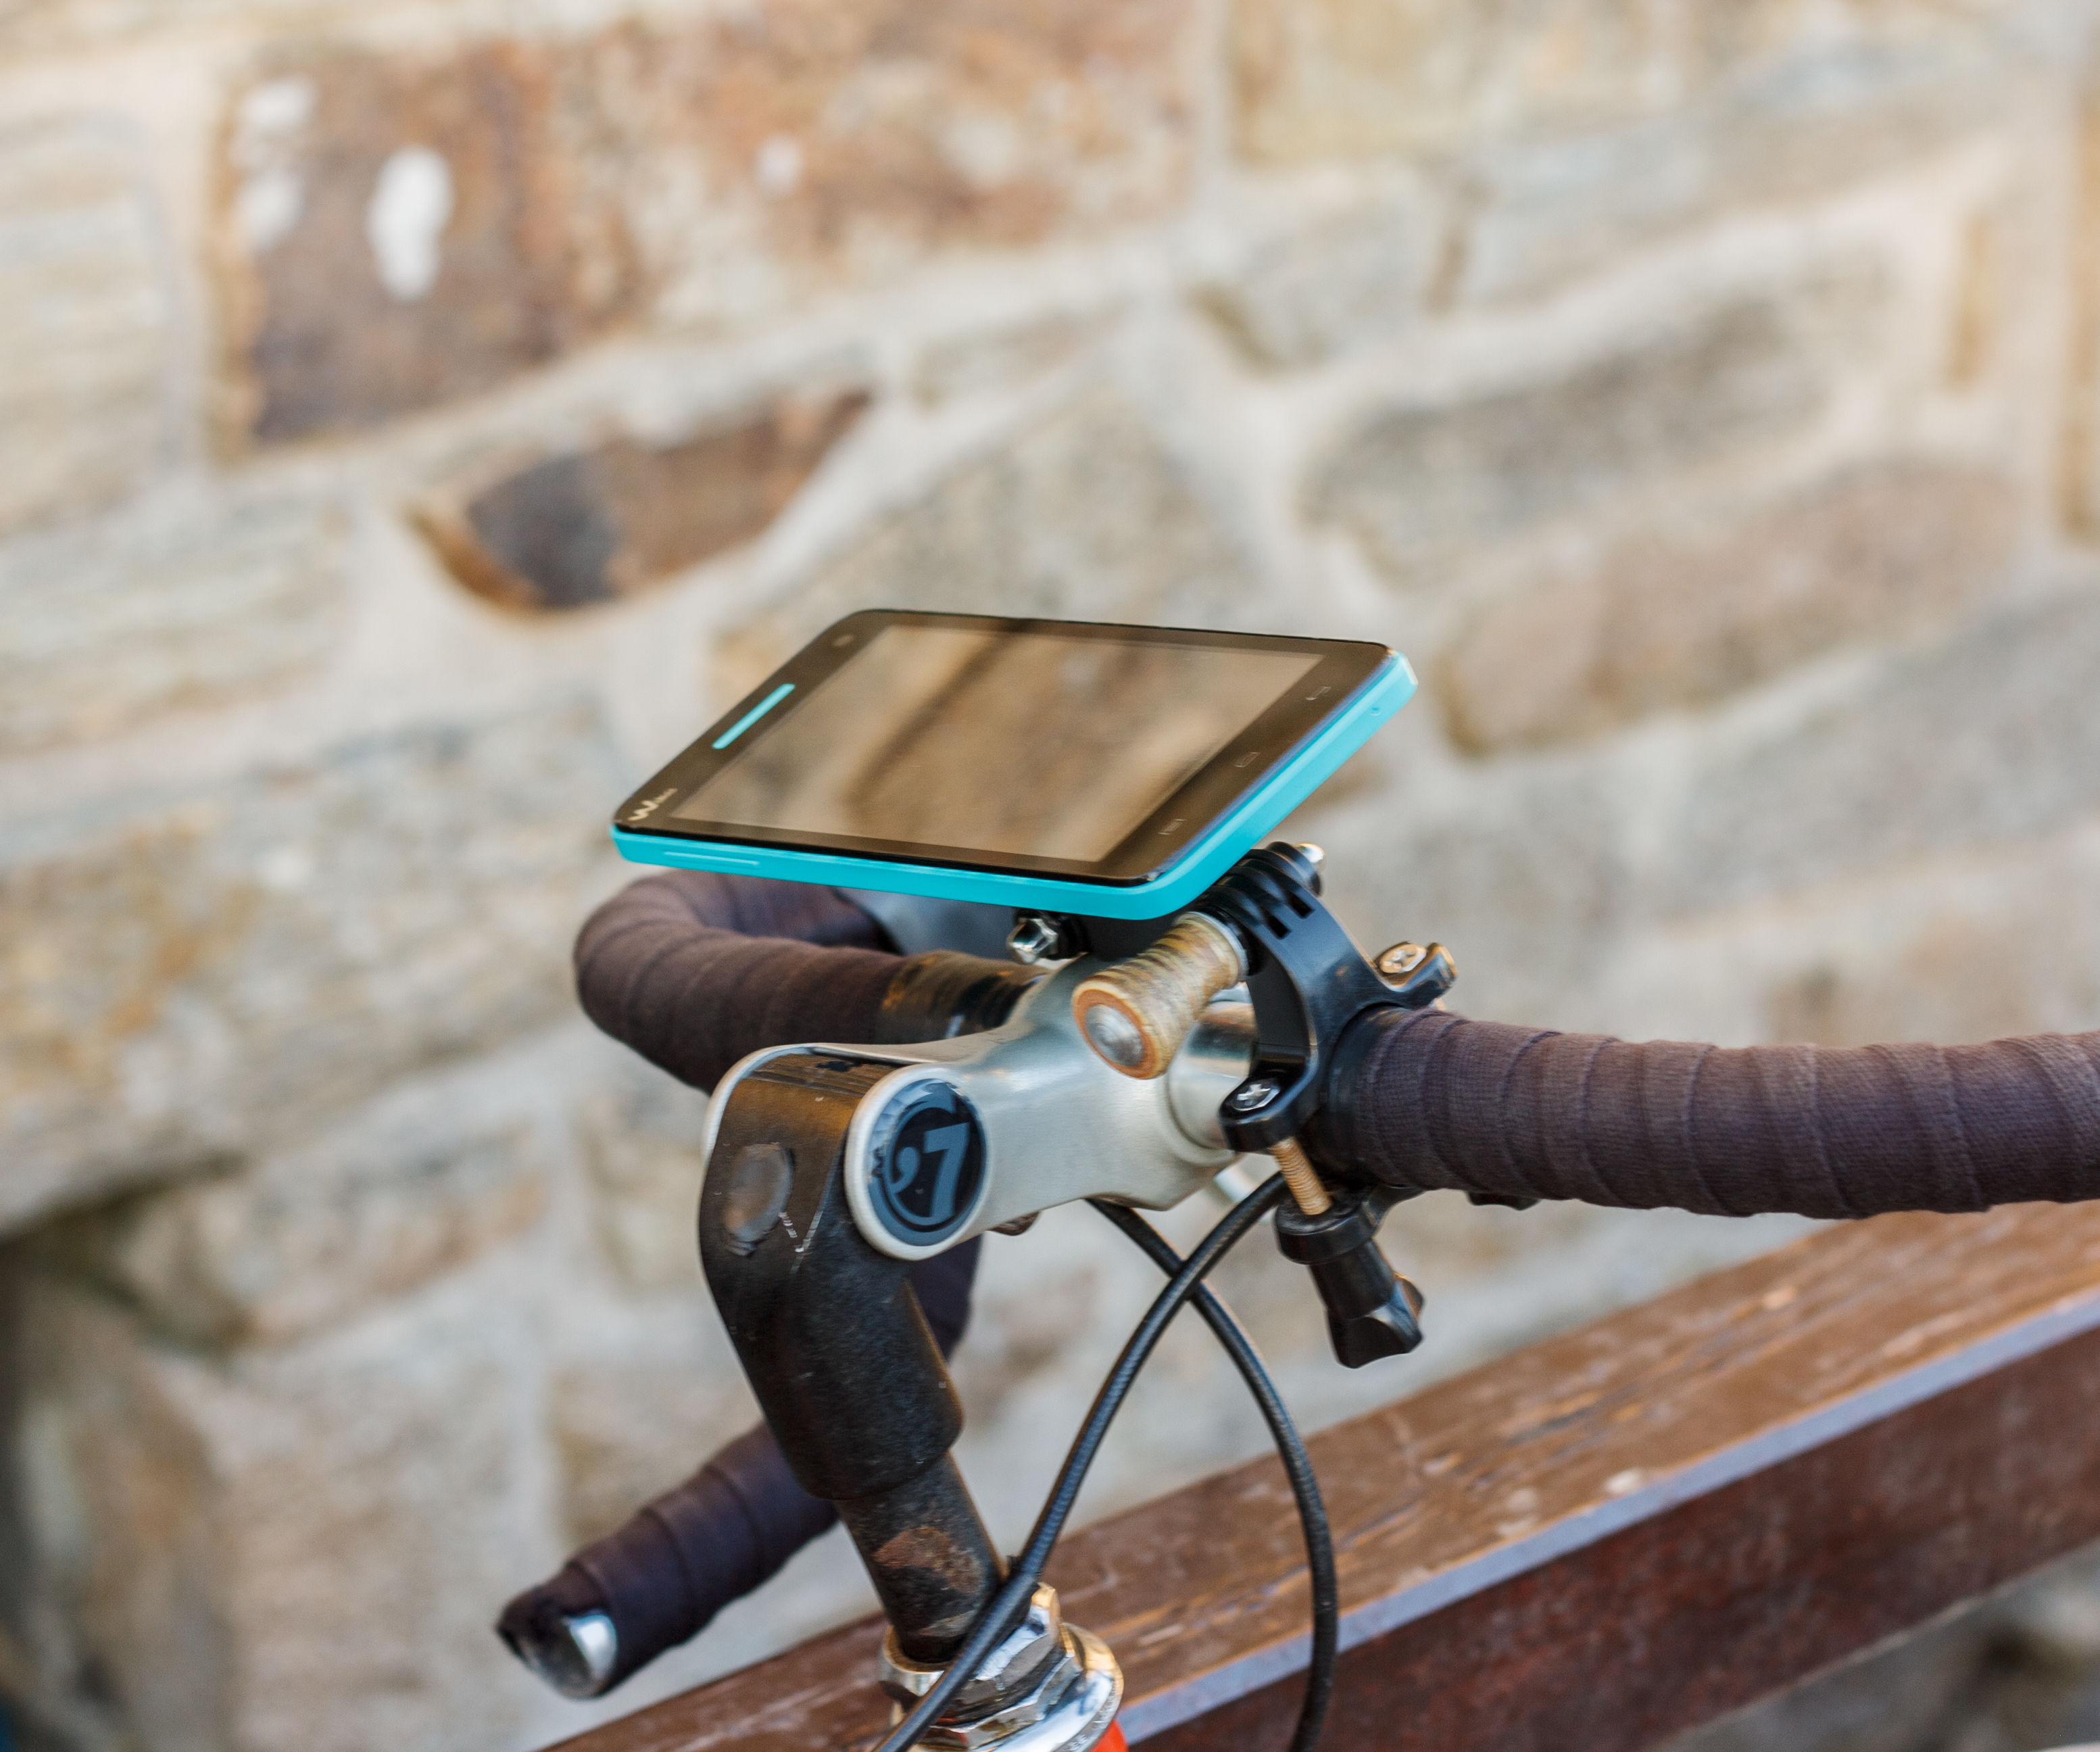 Attach Any Device With GoPro Accessories